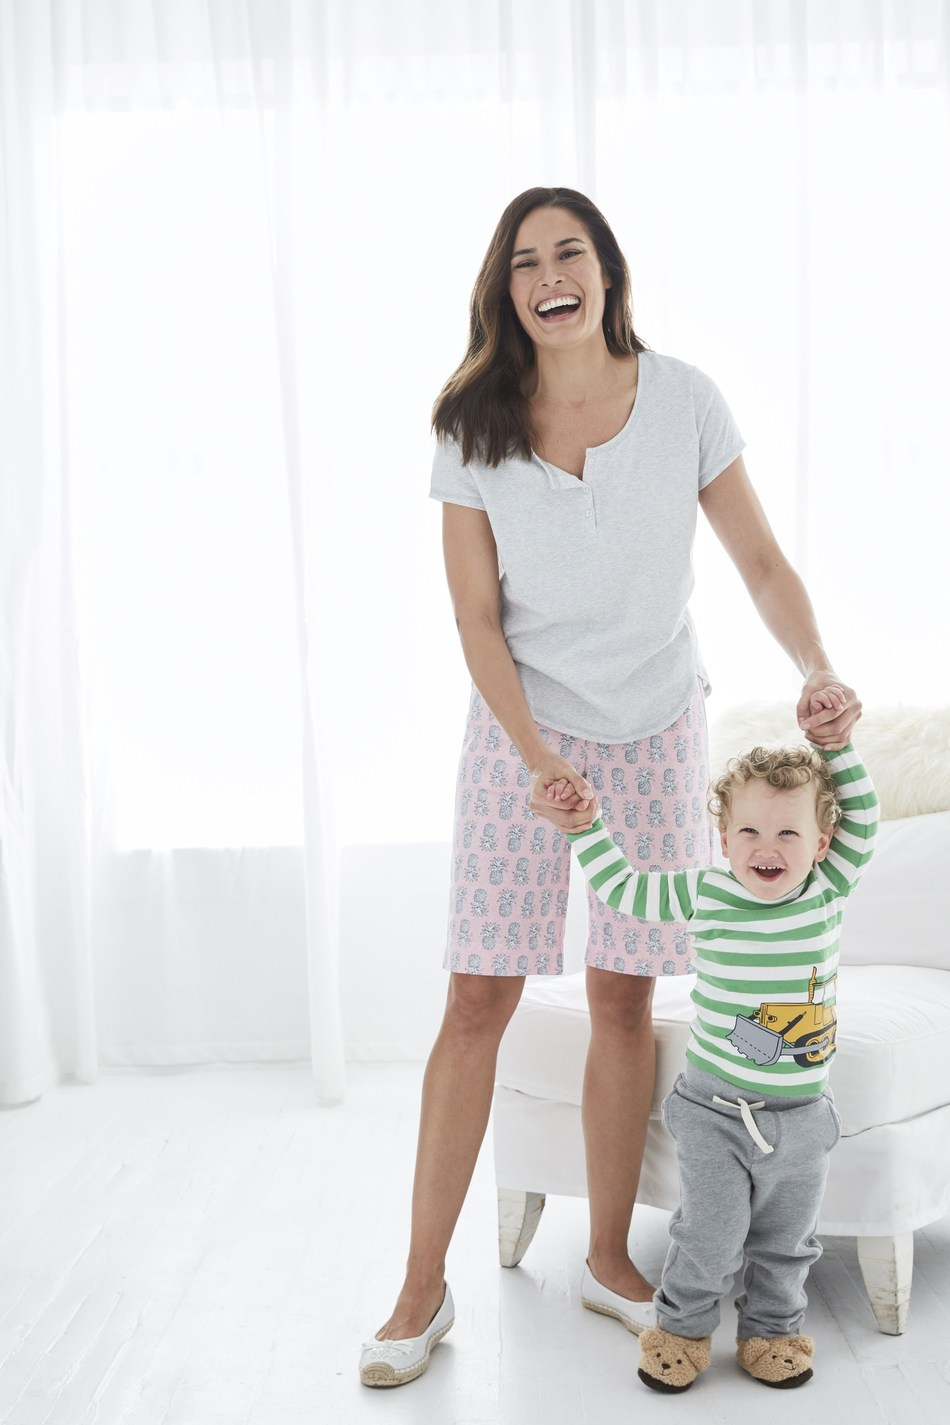 Why Stress? Enjoy Yourself This Valentine's Day in Pretty in Pink Comfy Shorts from Karen Neuburger.